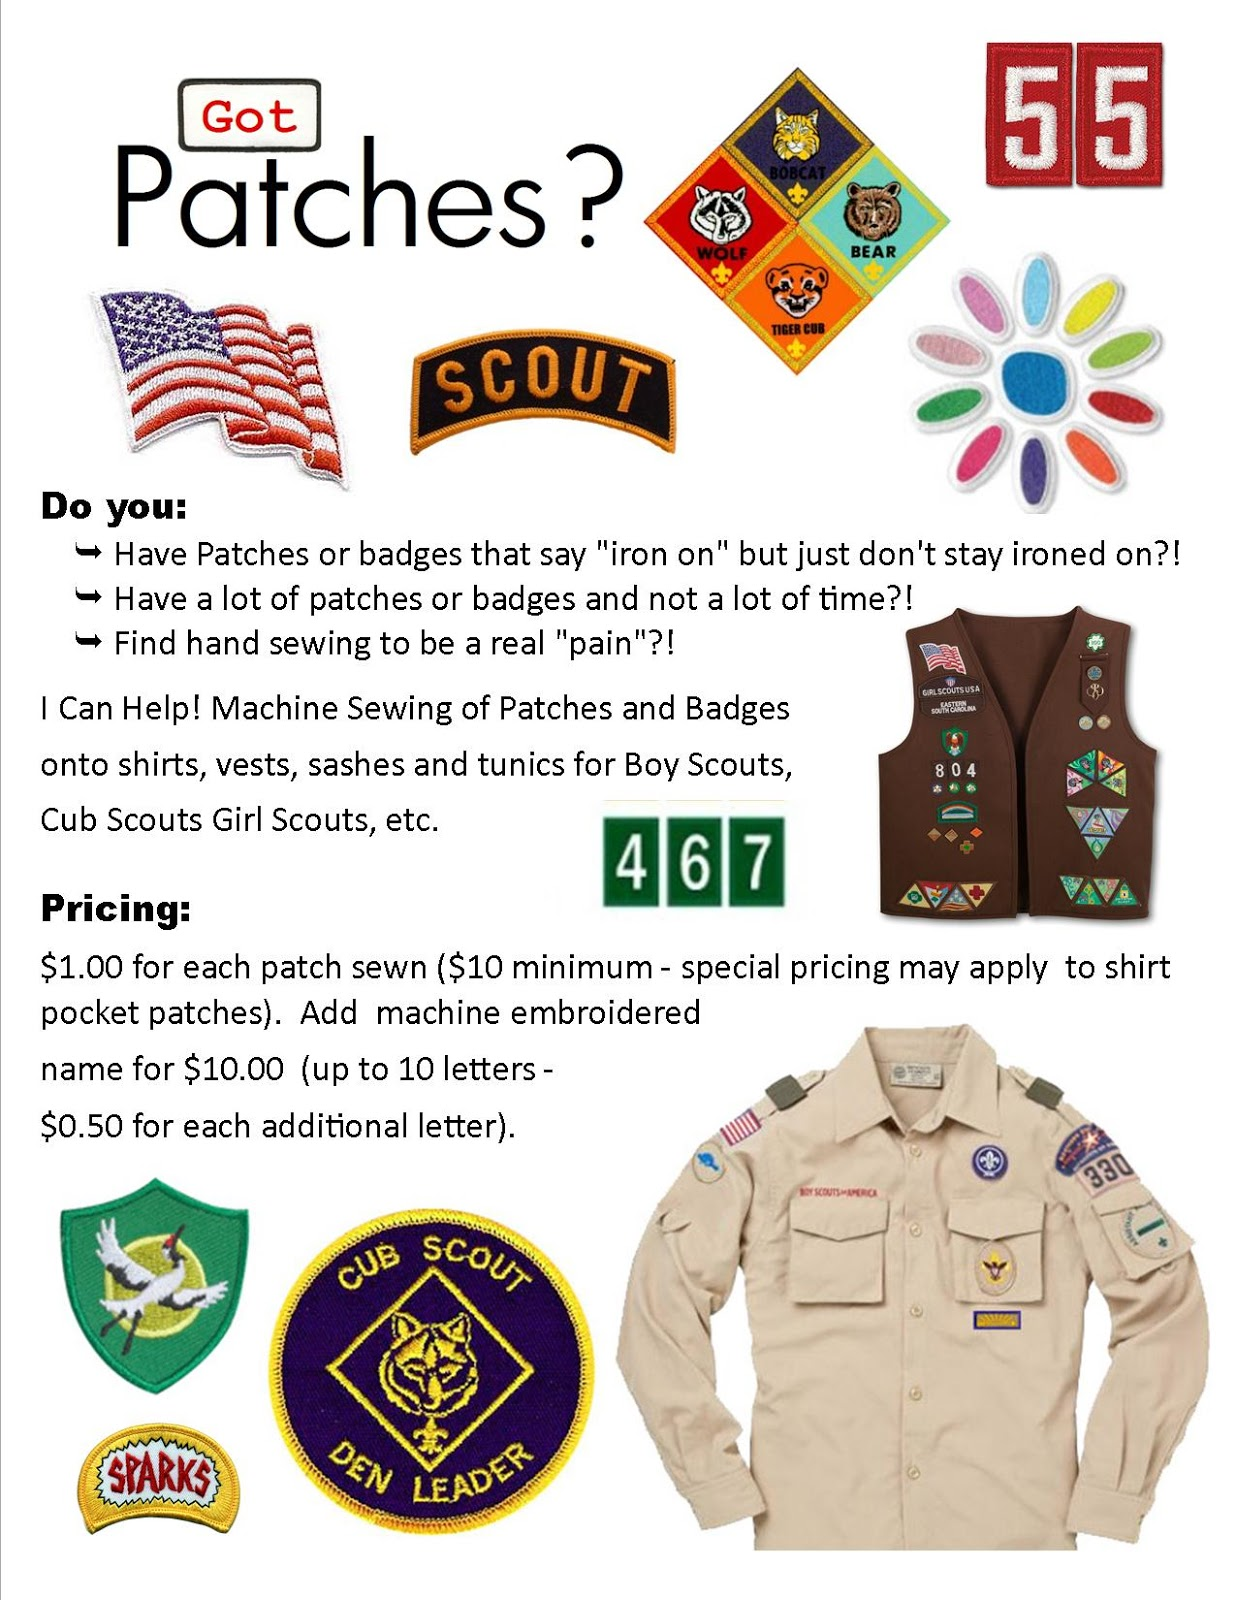 Sewing cub scout patches on uniform